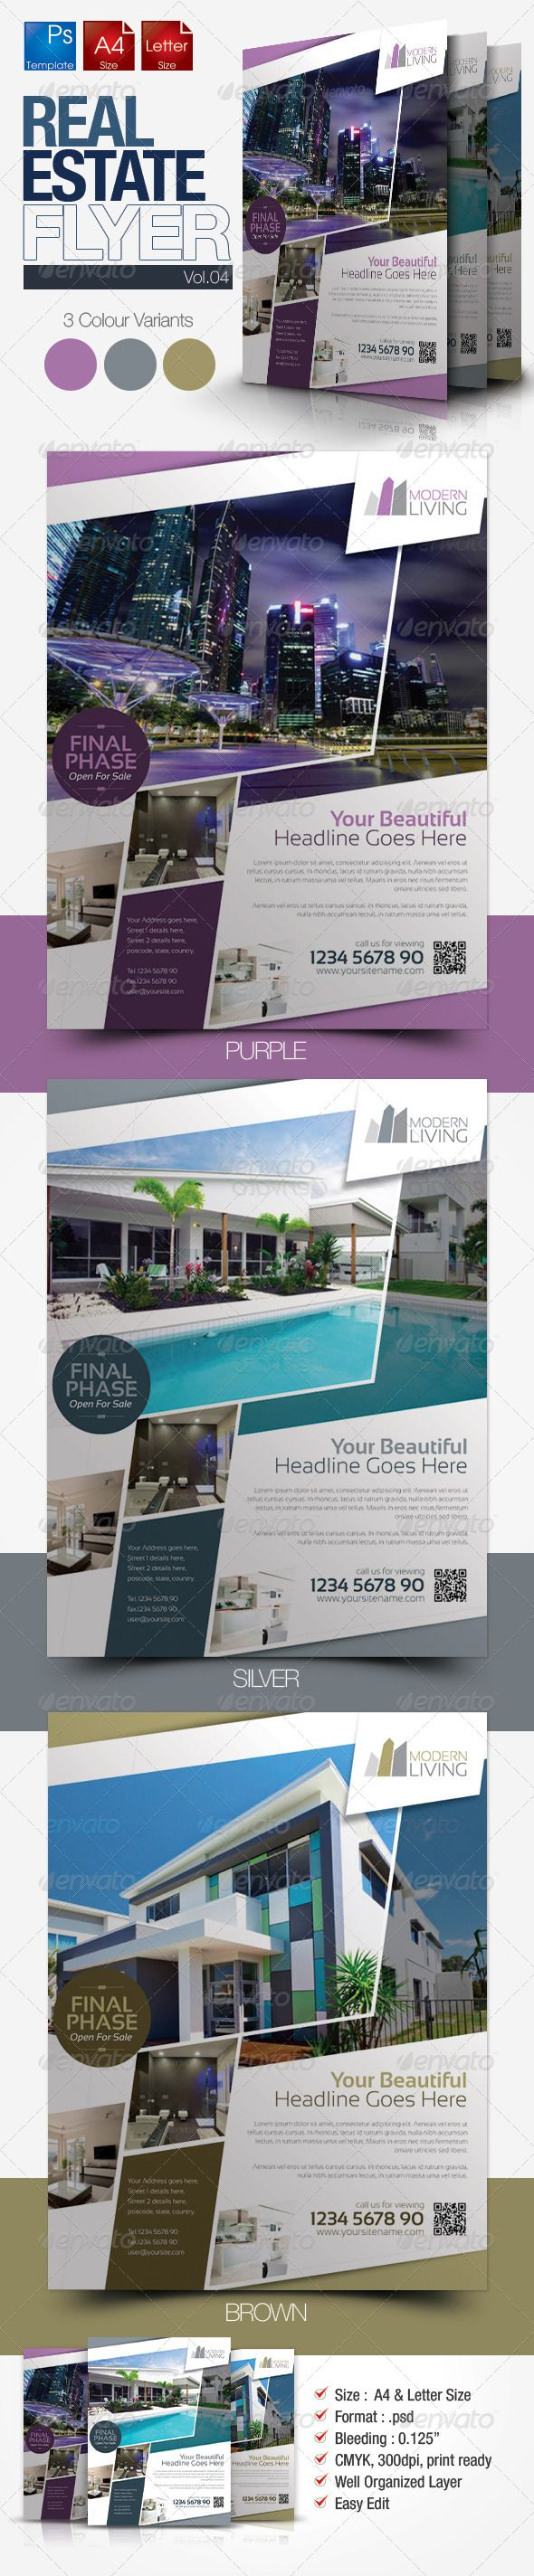 best ideas about real estate flyers real estate simple real estate flyer vol 04